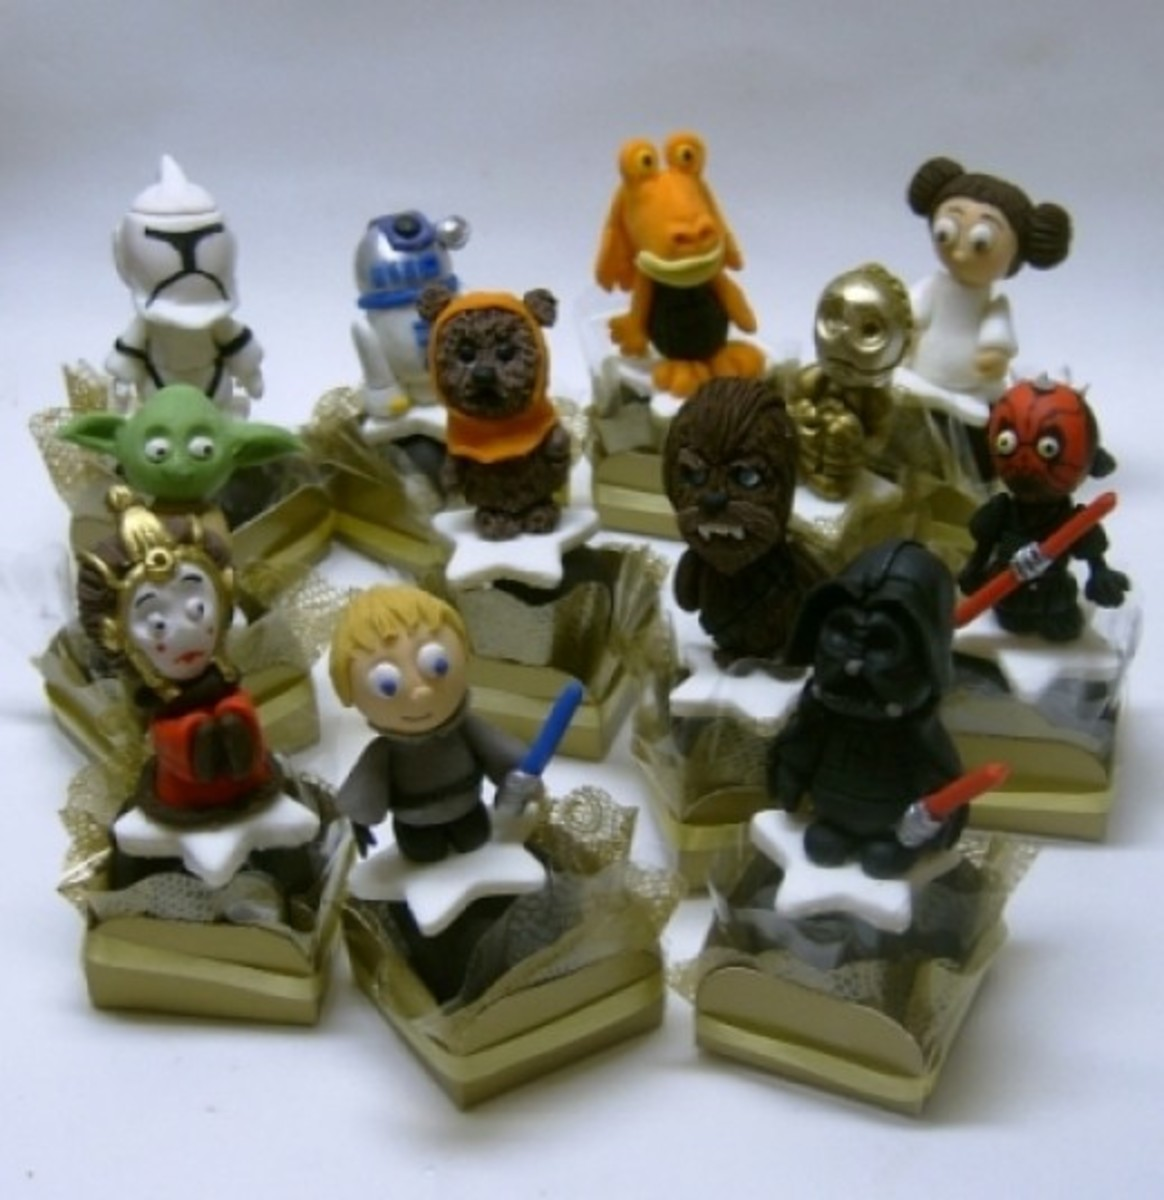 Awesome Star Wars Truffles (almost cupcake-ish!) by Ana Fuji